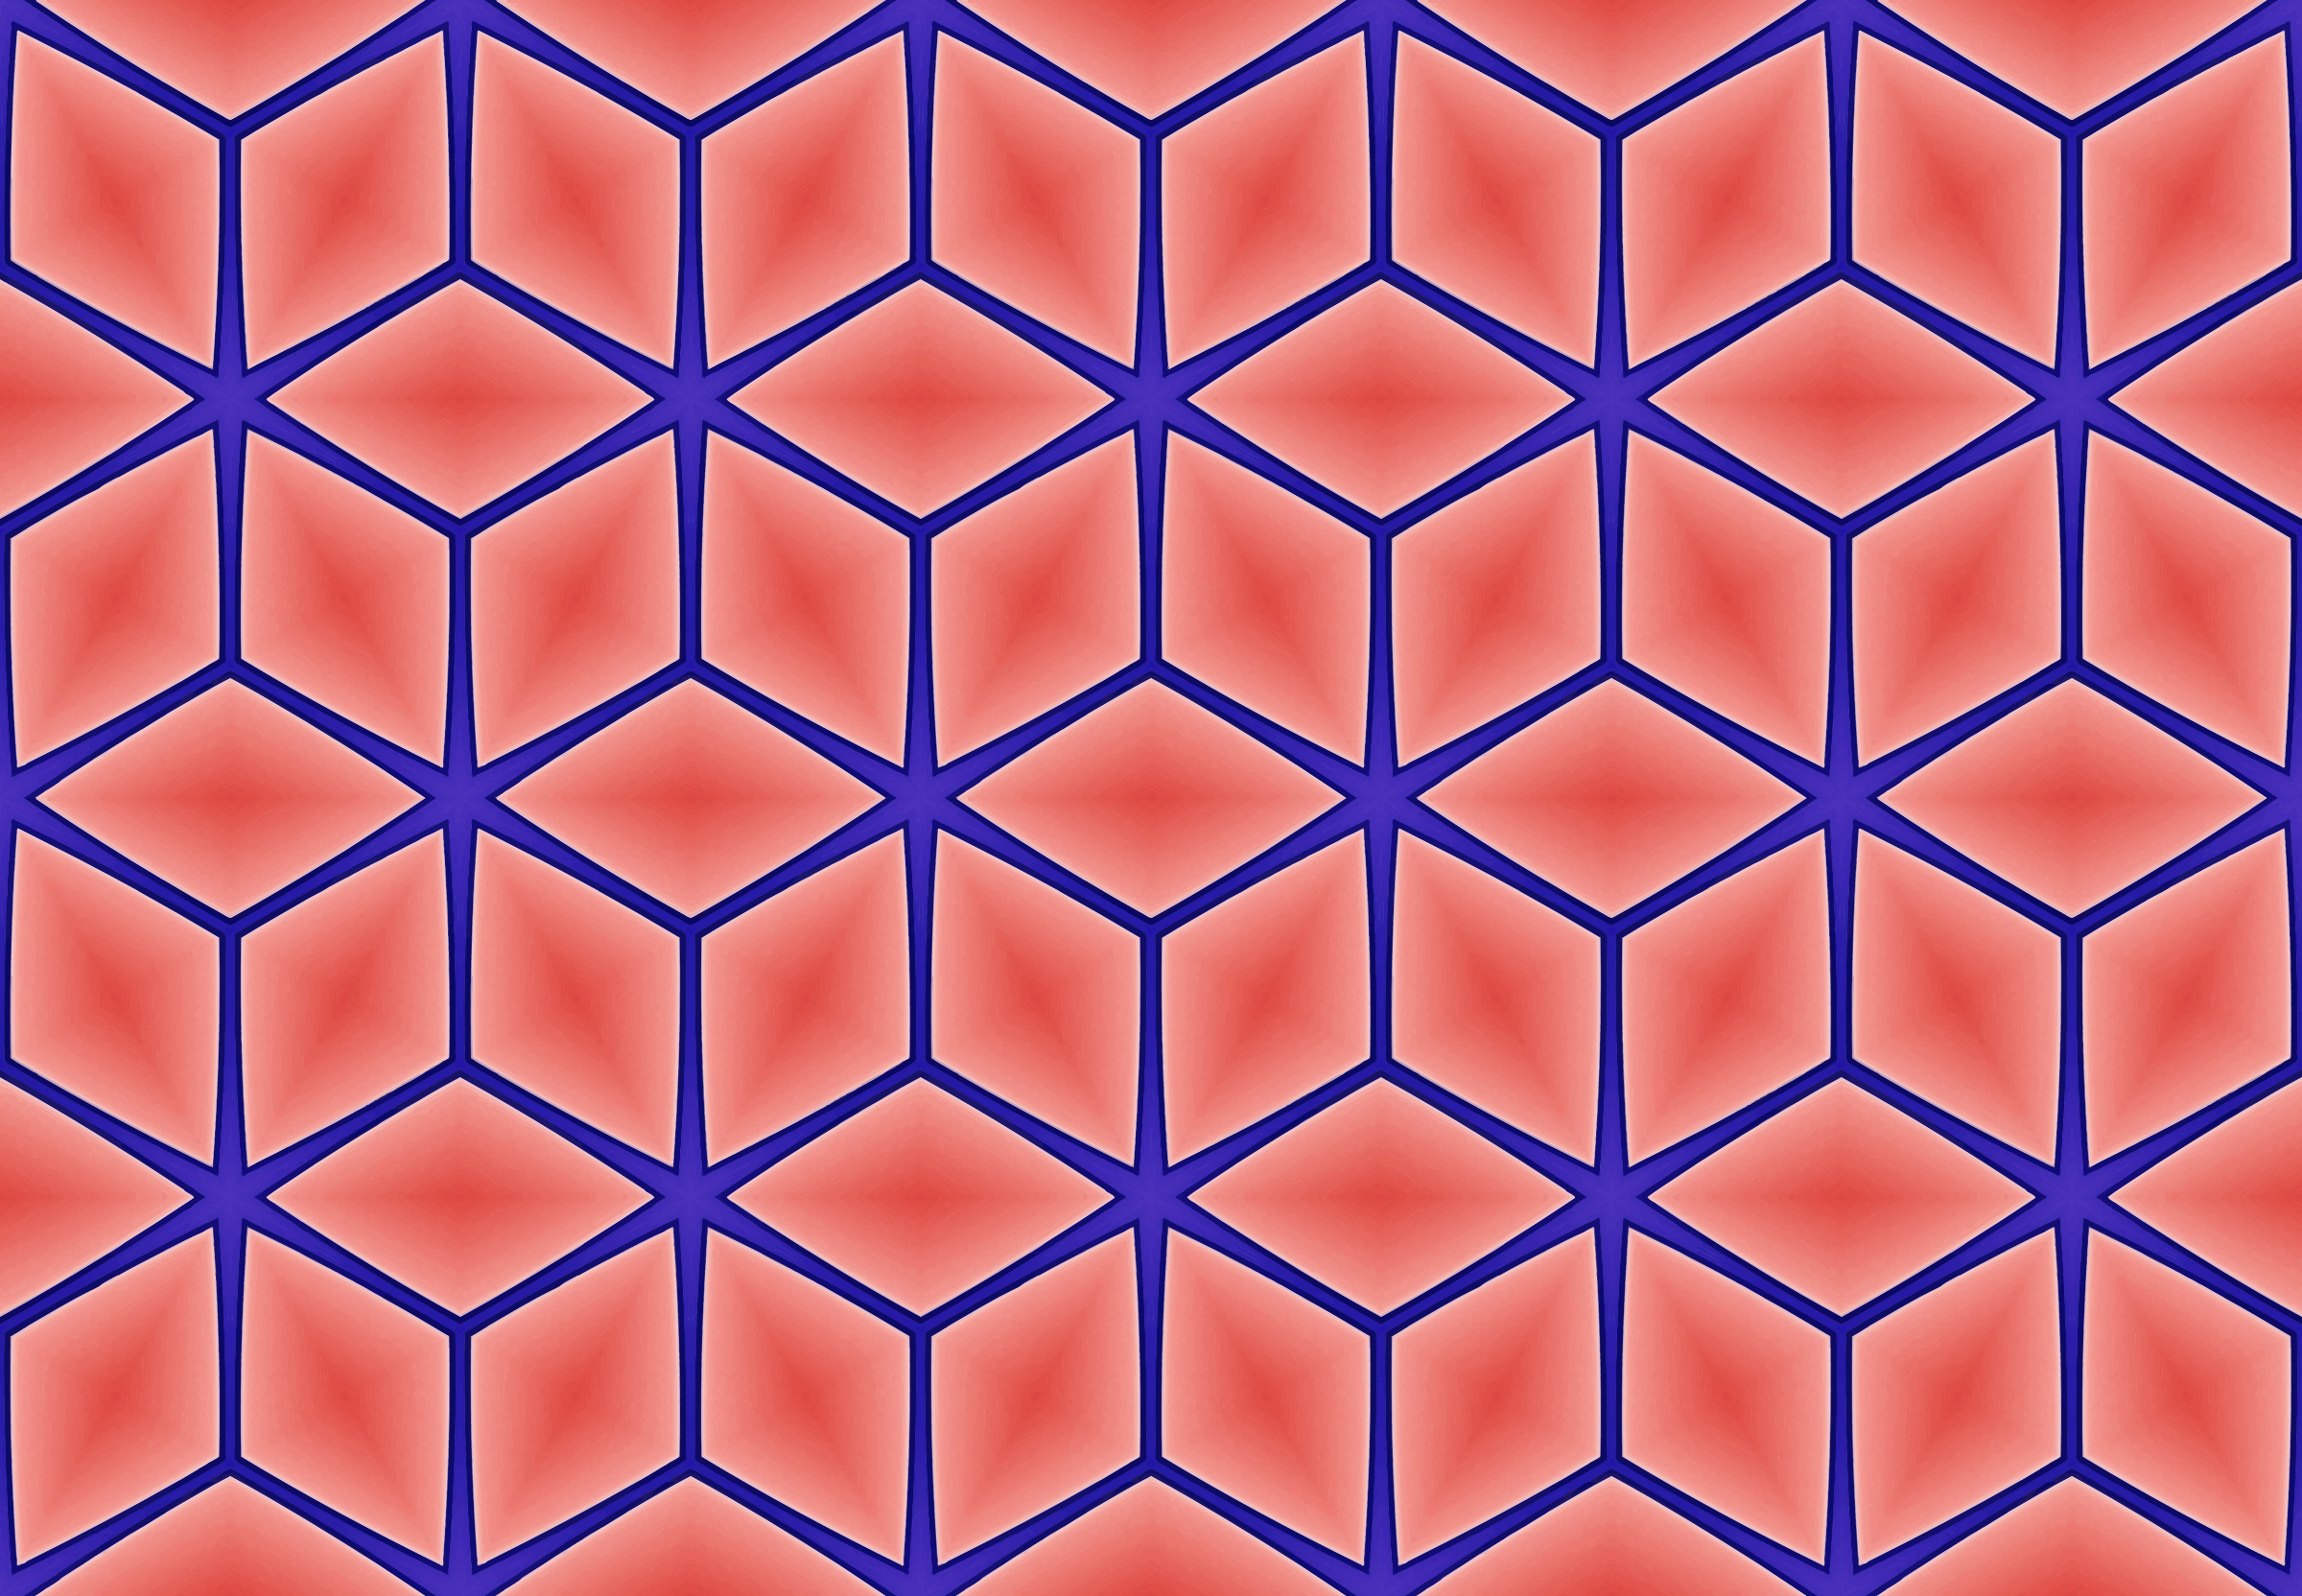 Background pattern 317 (colour 4) by Firkin